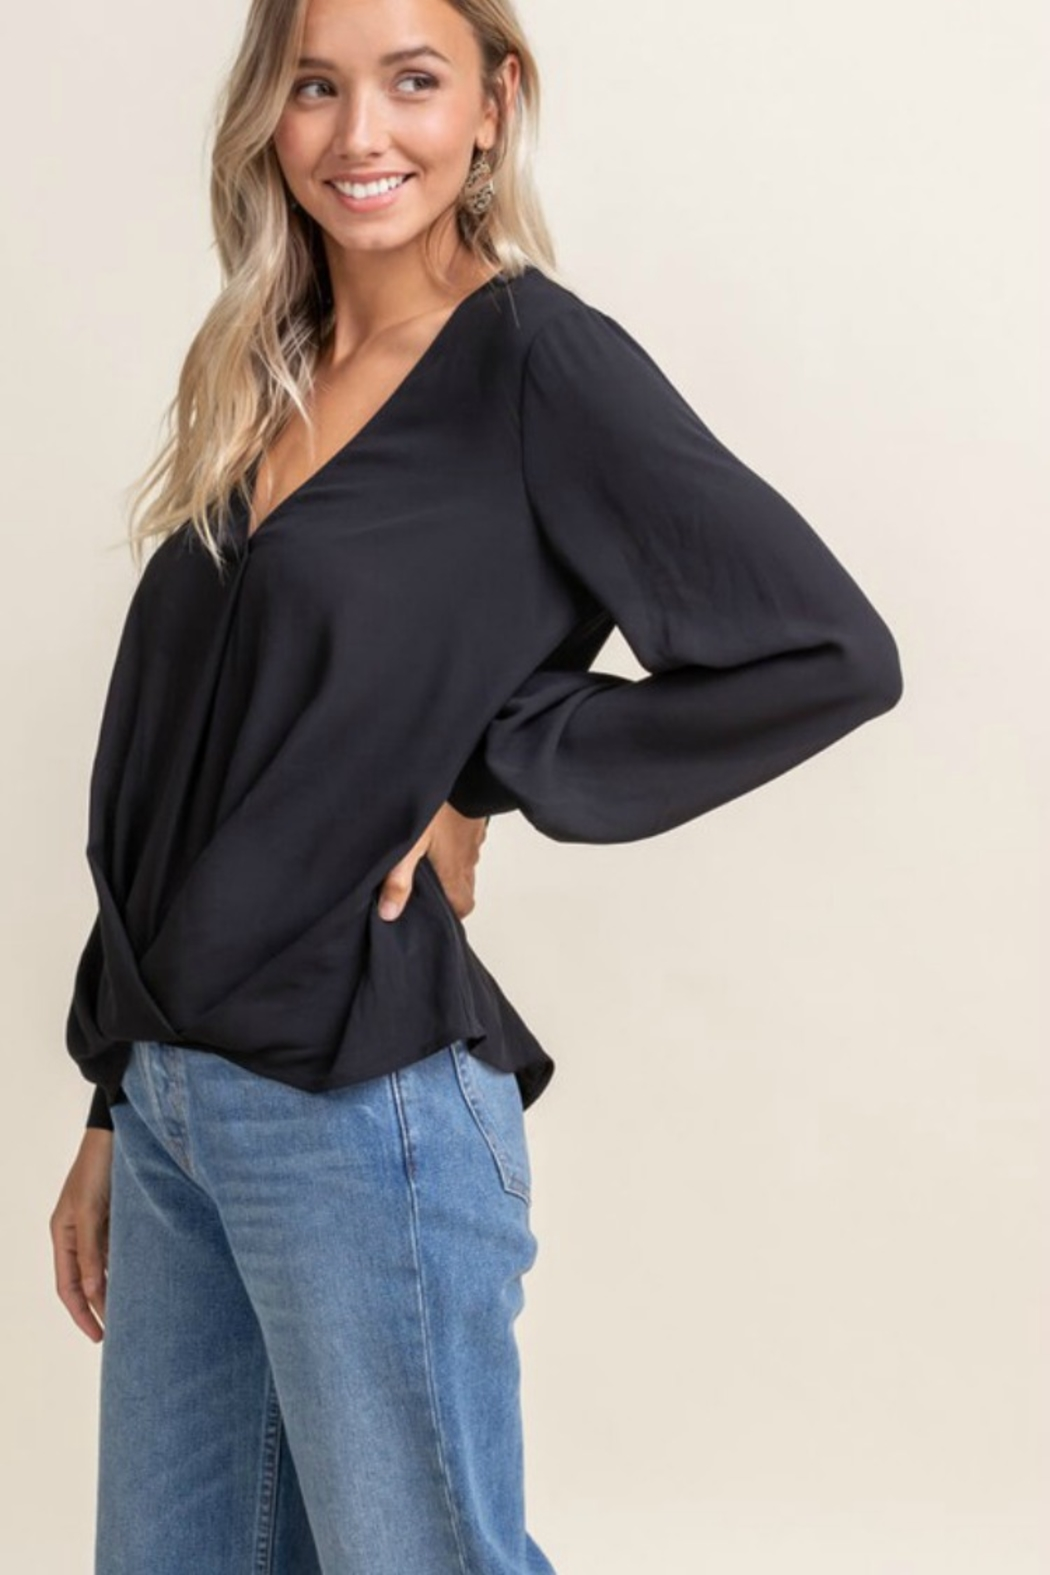 Lush Clothing  FIRE UP BLOUSE - Front Full Image